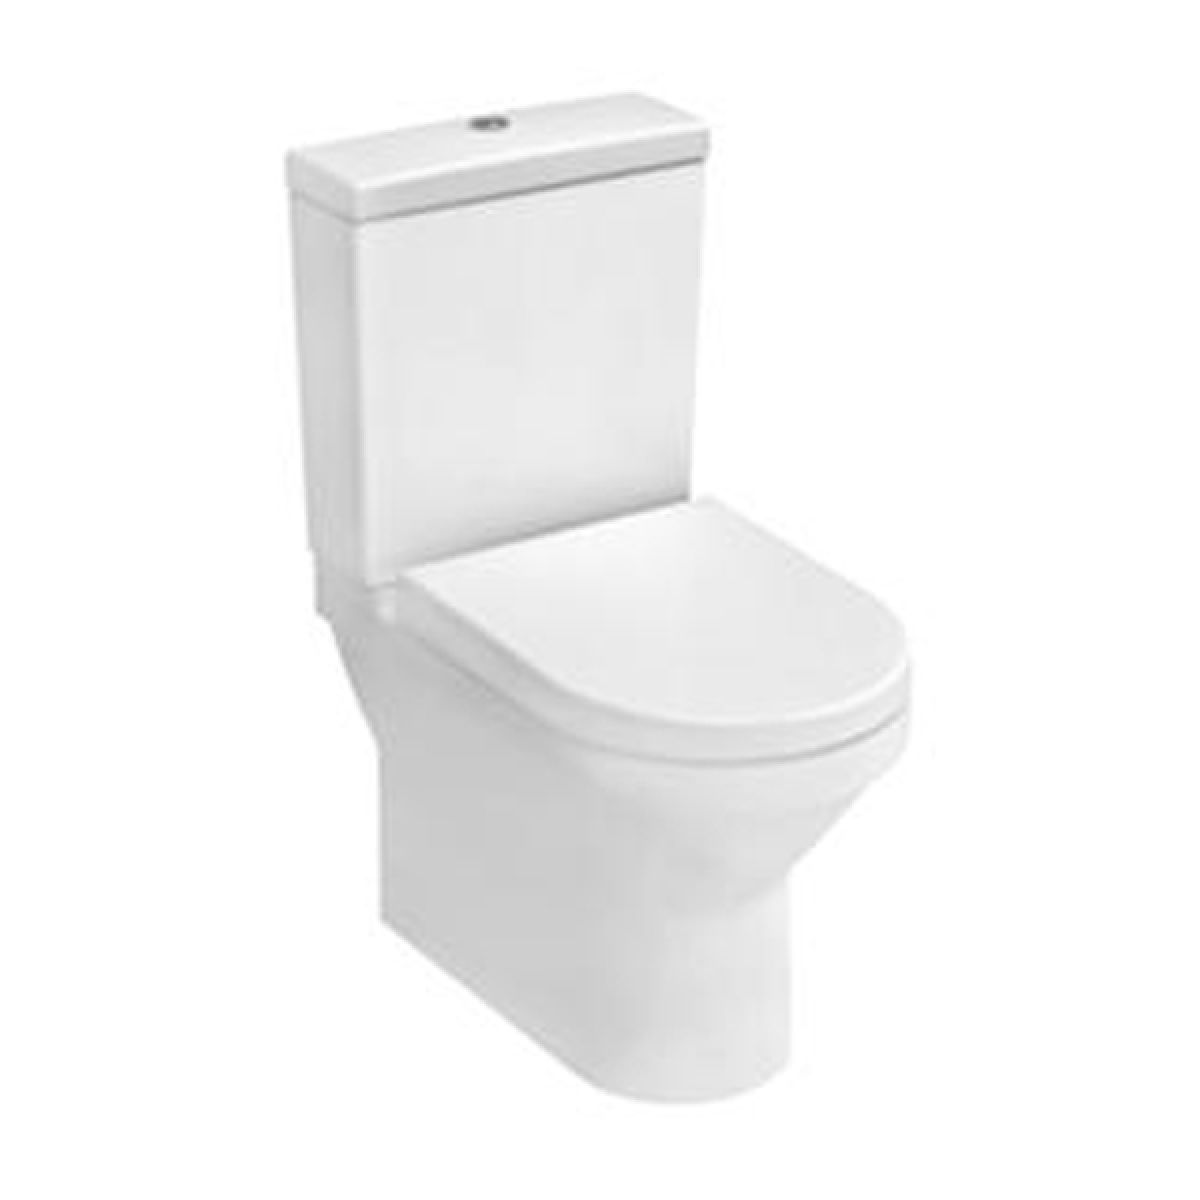 Vitra S50 Compact Back To Wall Close Coupled Toilet